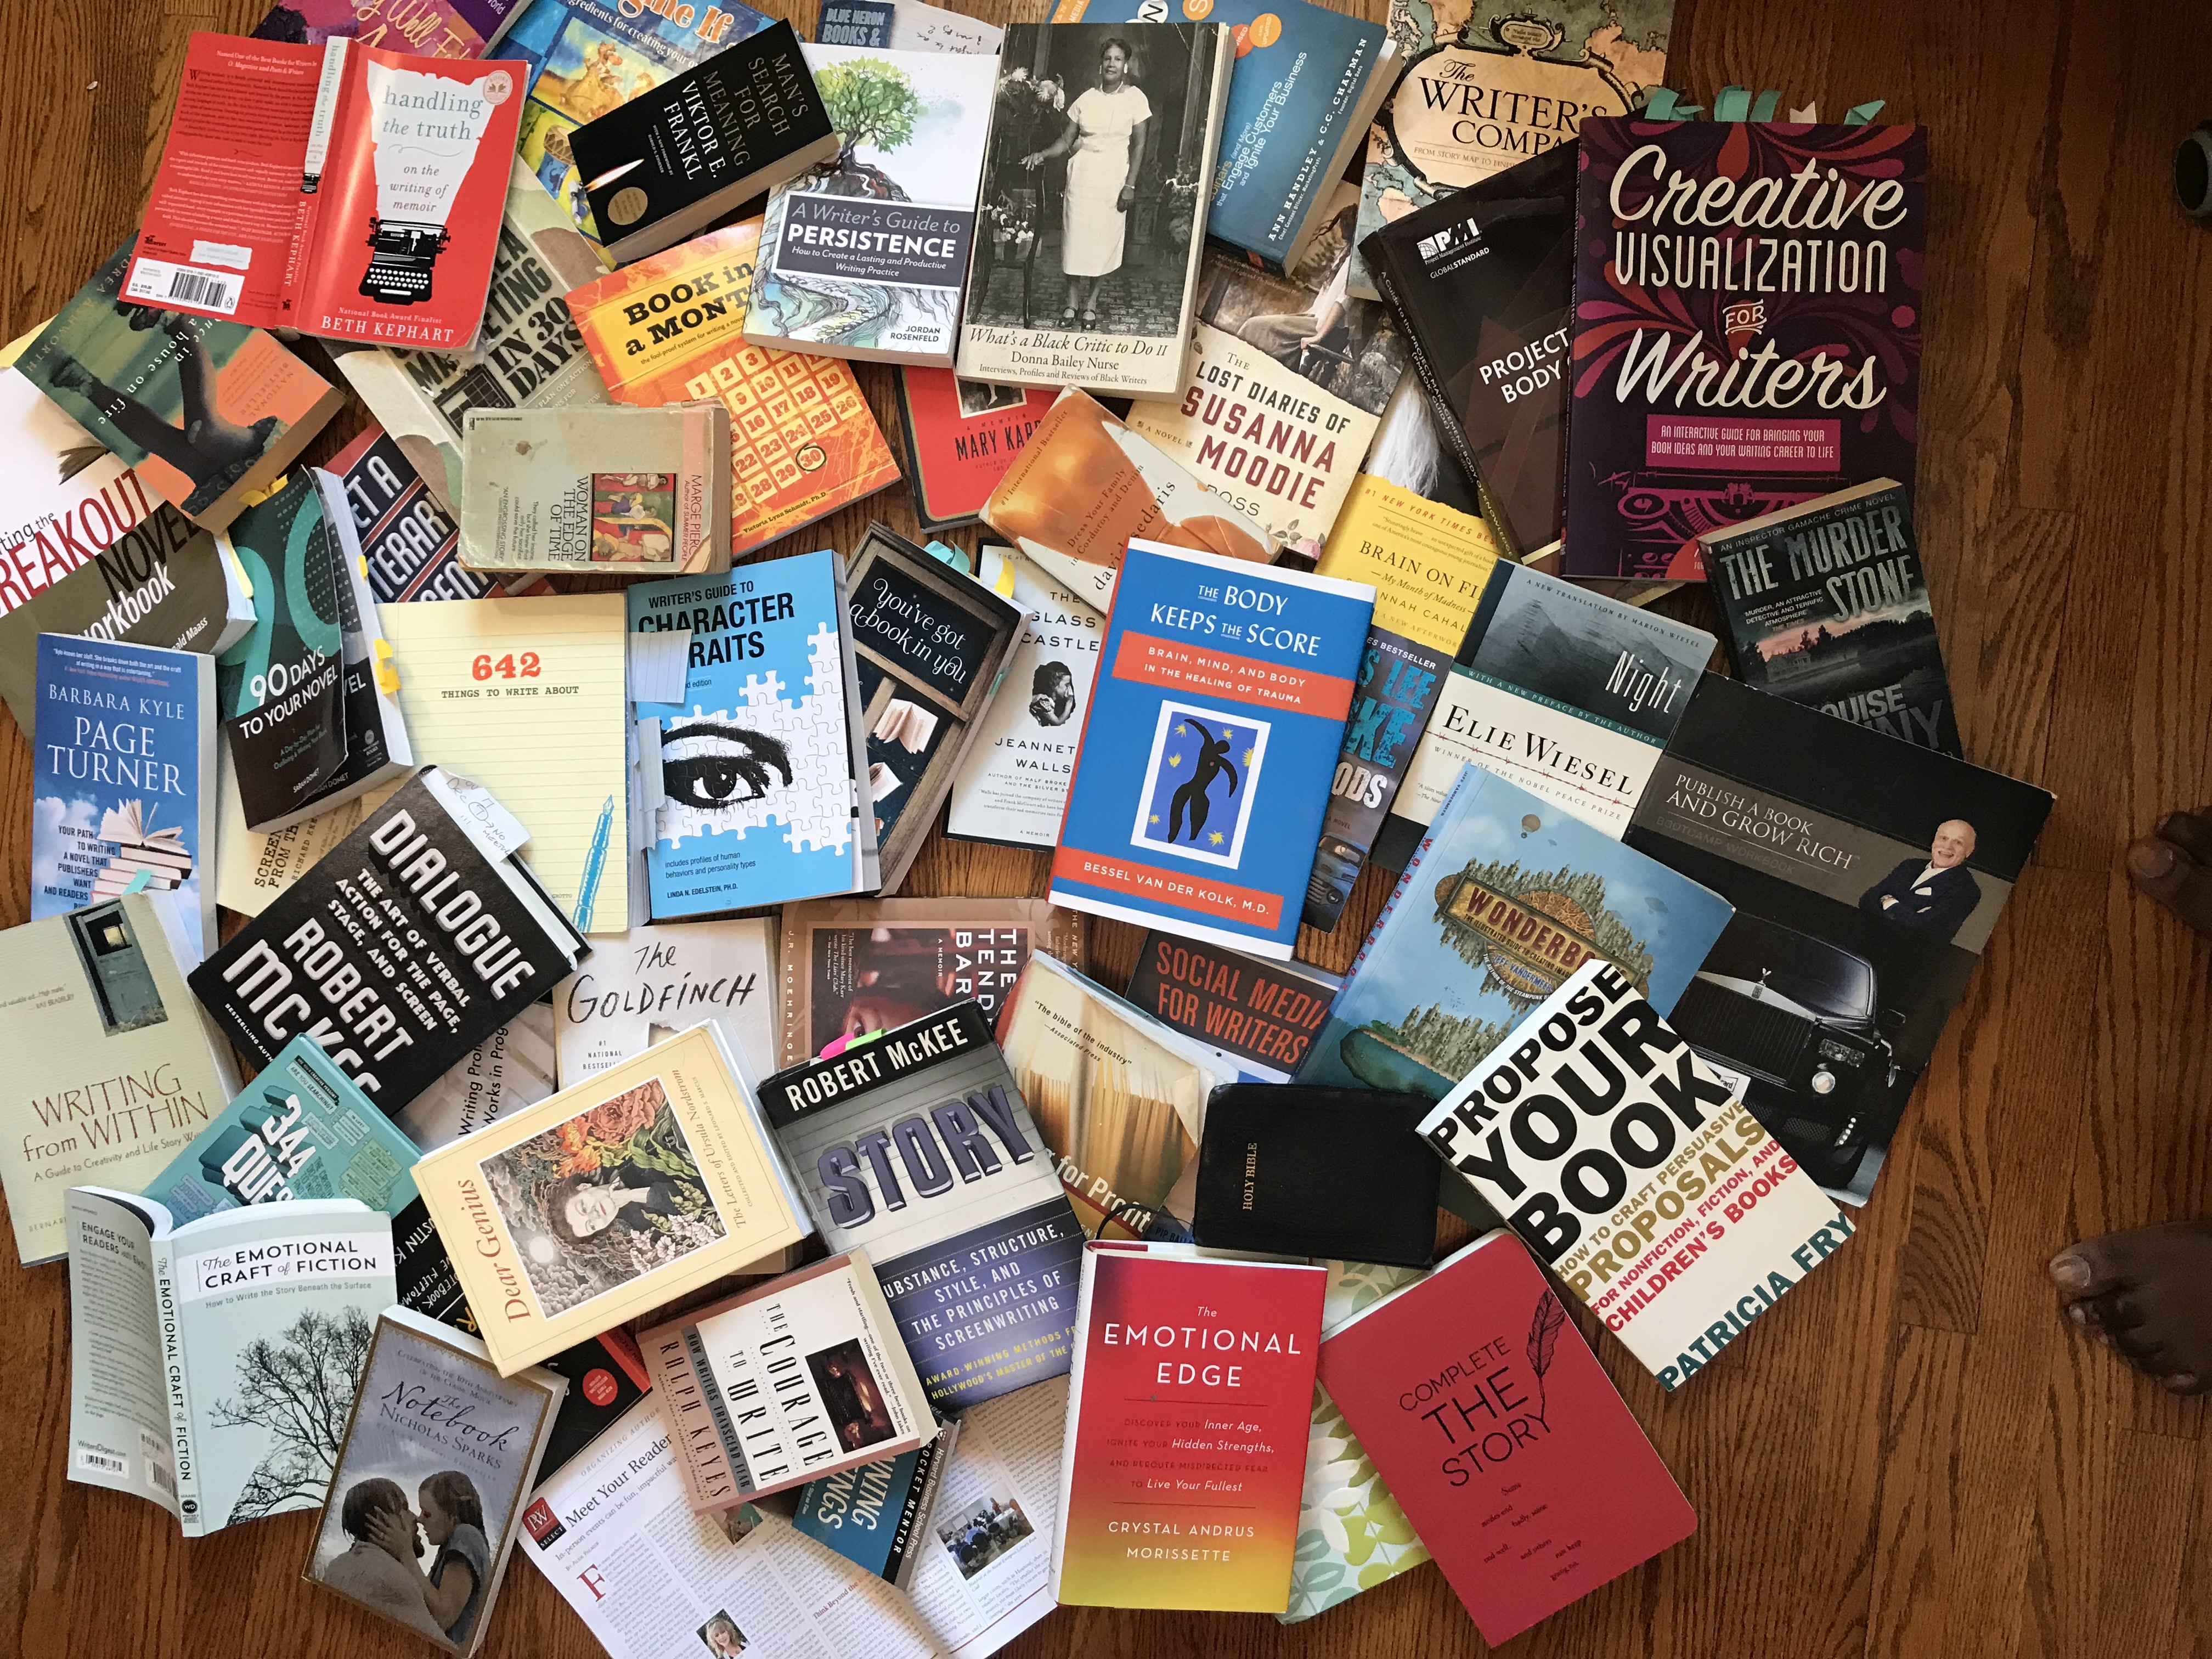 Photograph of writing and editing books